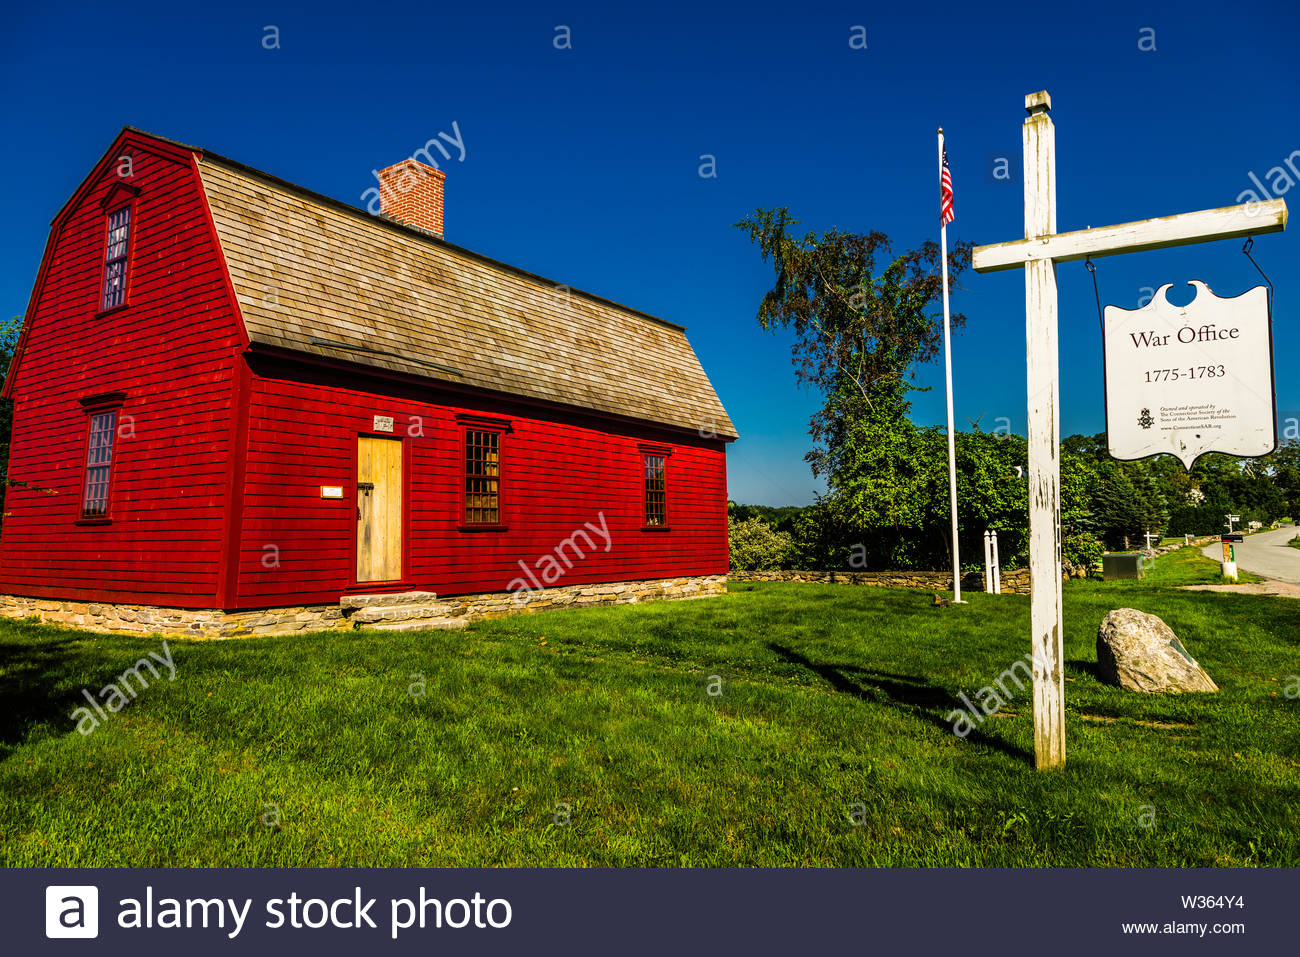 War Office _ Lebanon, Connecticut, USA - Stock Image